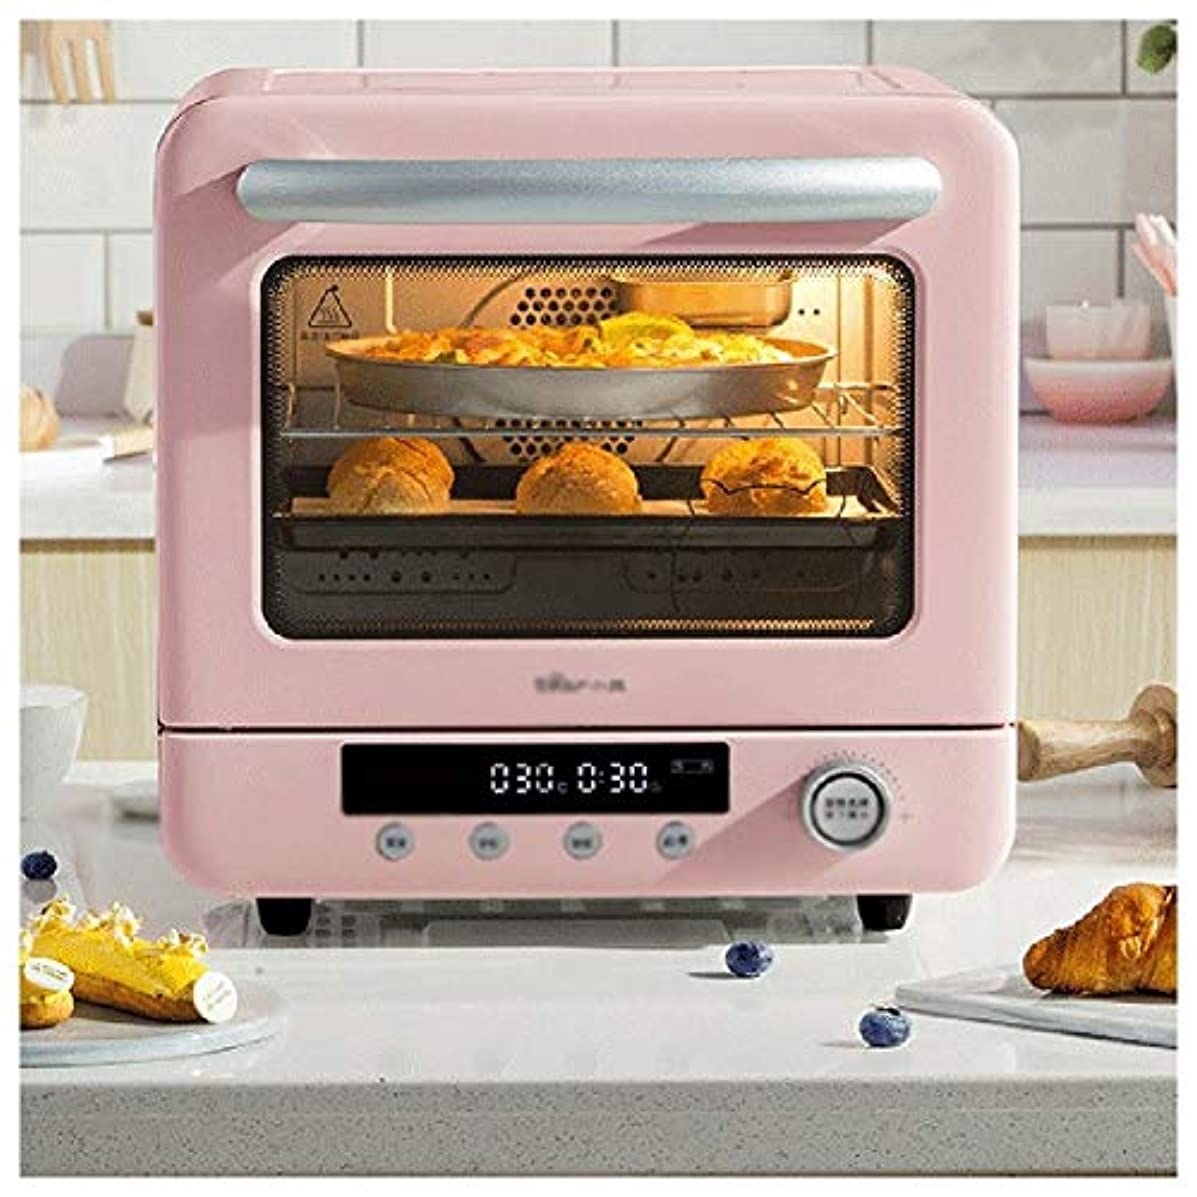 Noble.Store Oven With Convection Toast Bake Broil Function Stainless Steel -51 oven